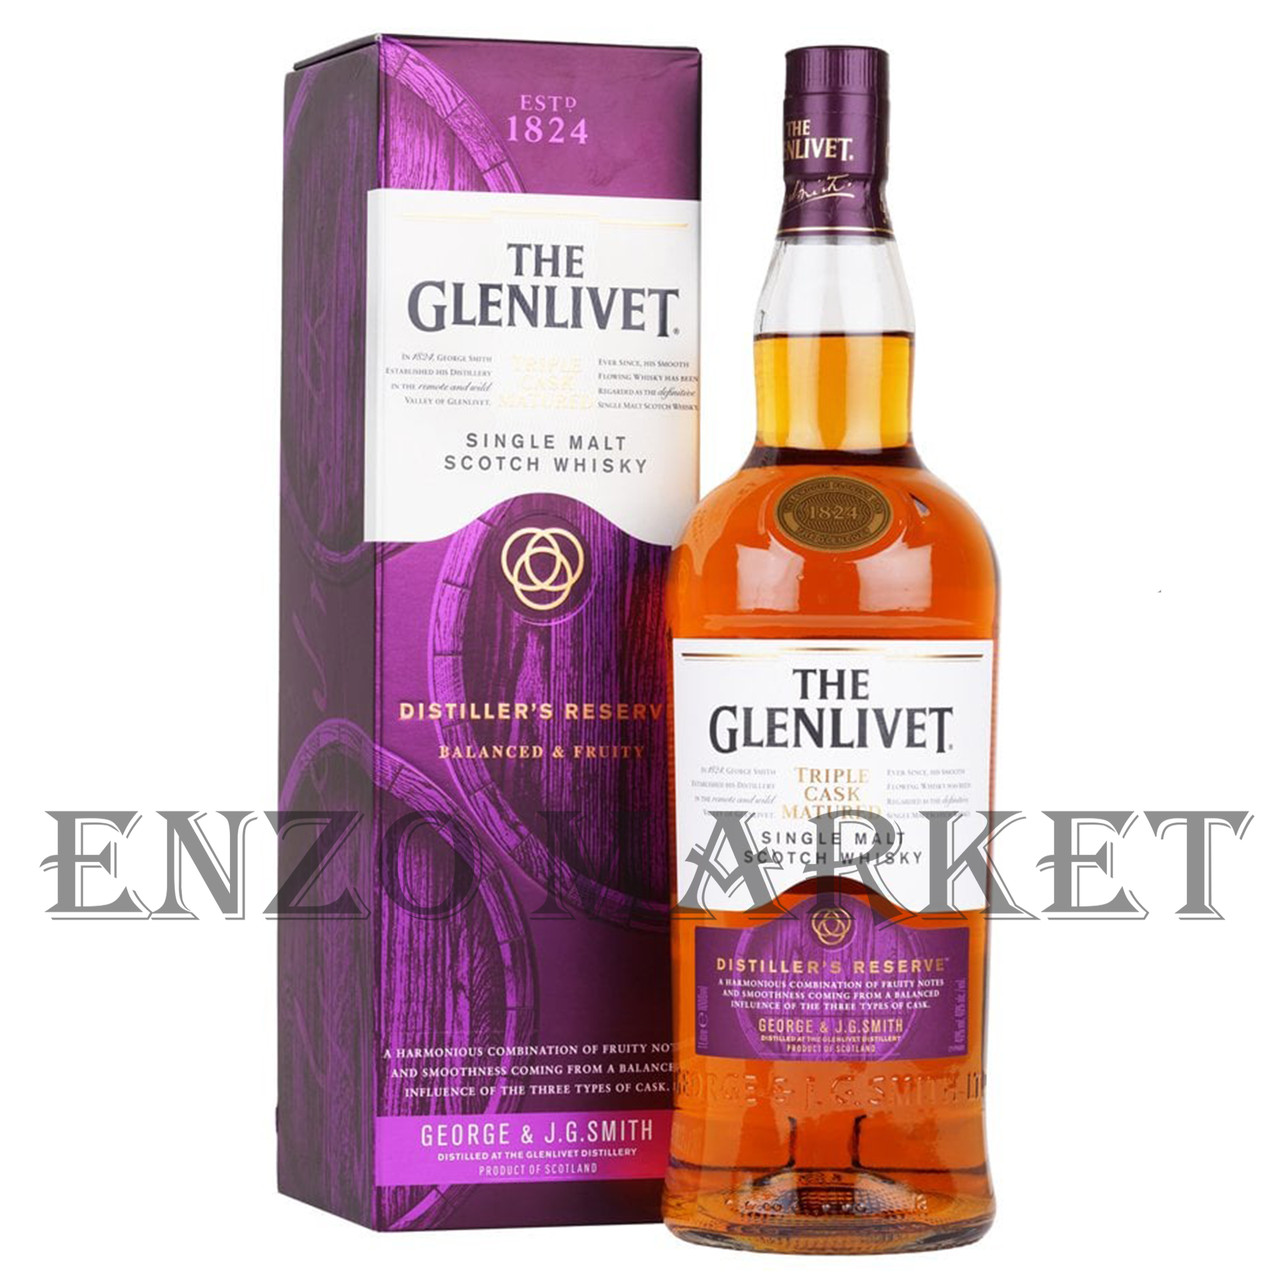 Виски Glenlivet Triple Cask Matured Distillers Reserve (Гленливет Трипл Каск Матуред) 40%, 1 литр